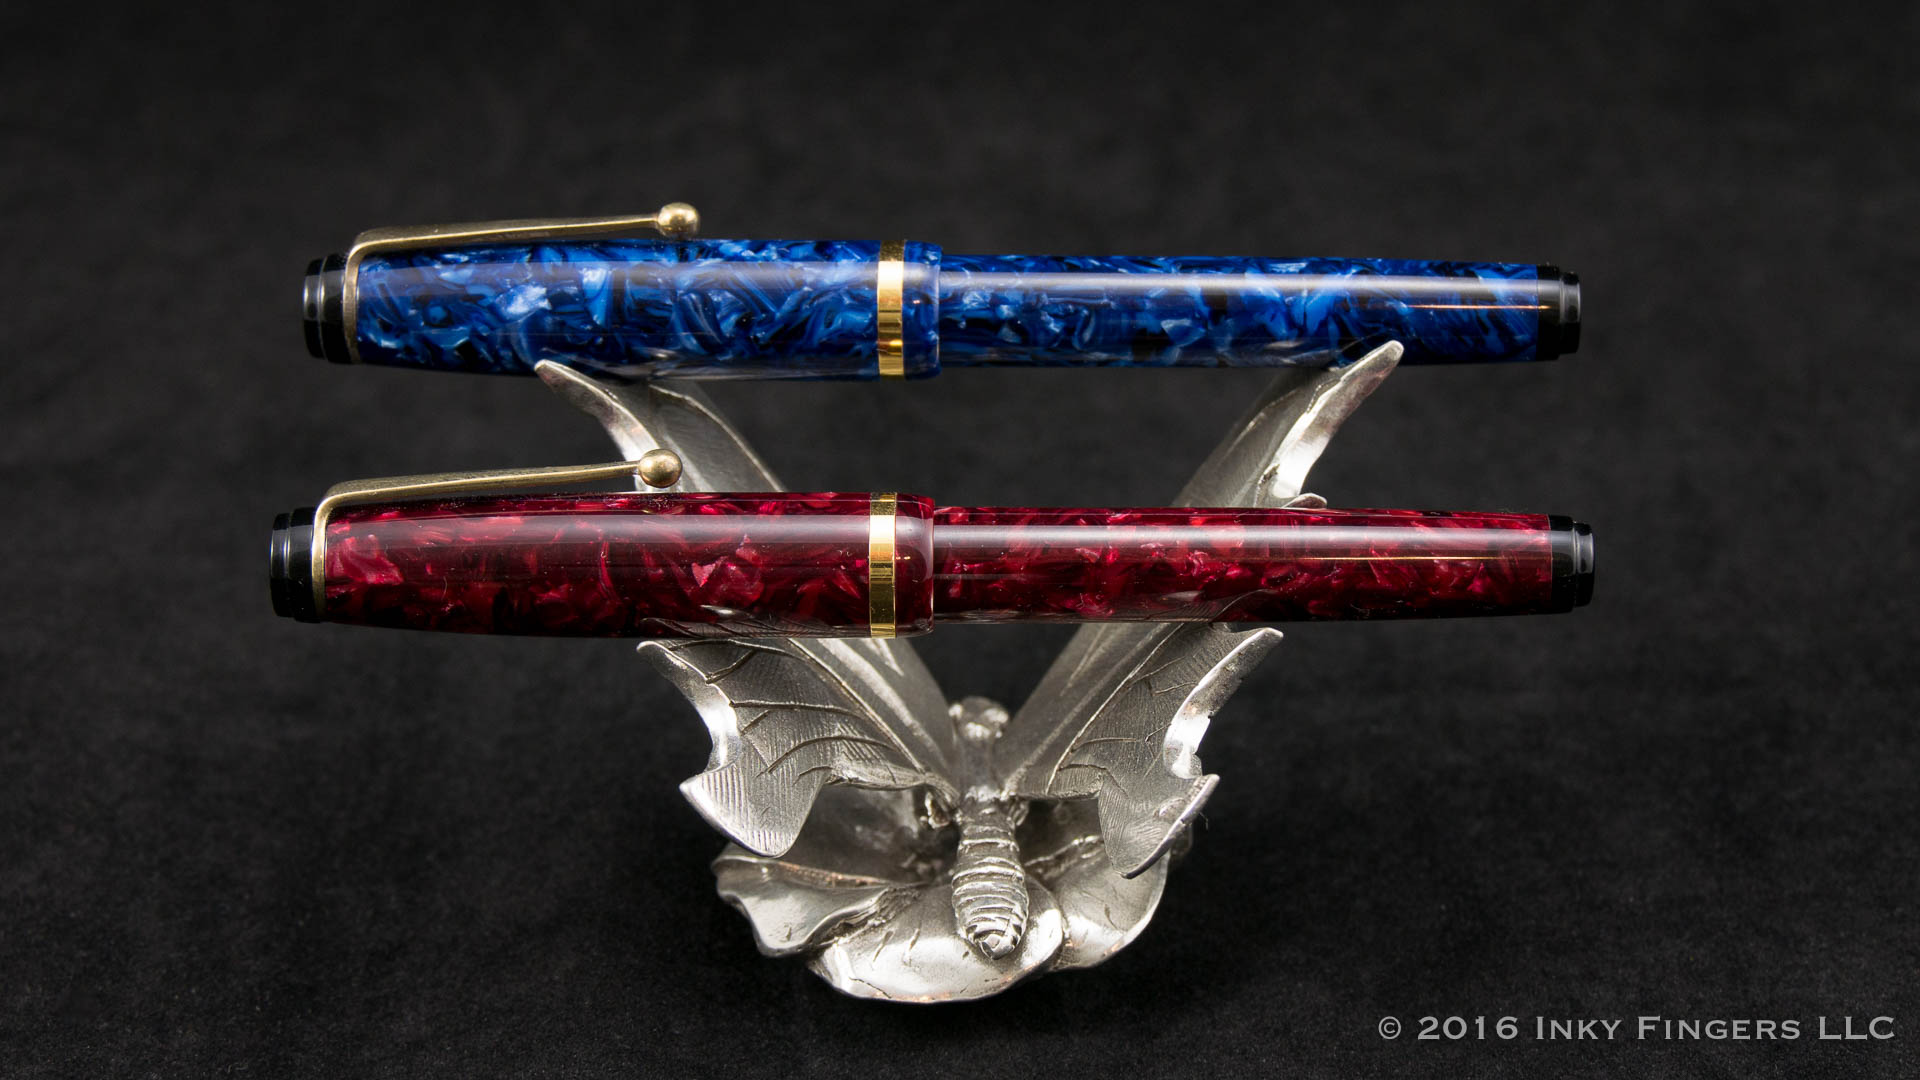 [Finished] Bexley Gaston's Exclusive Fountain Pen Giveaway